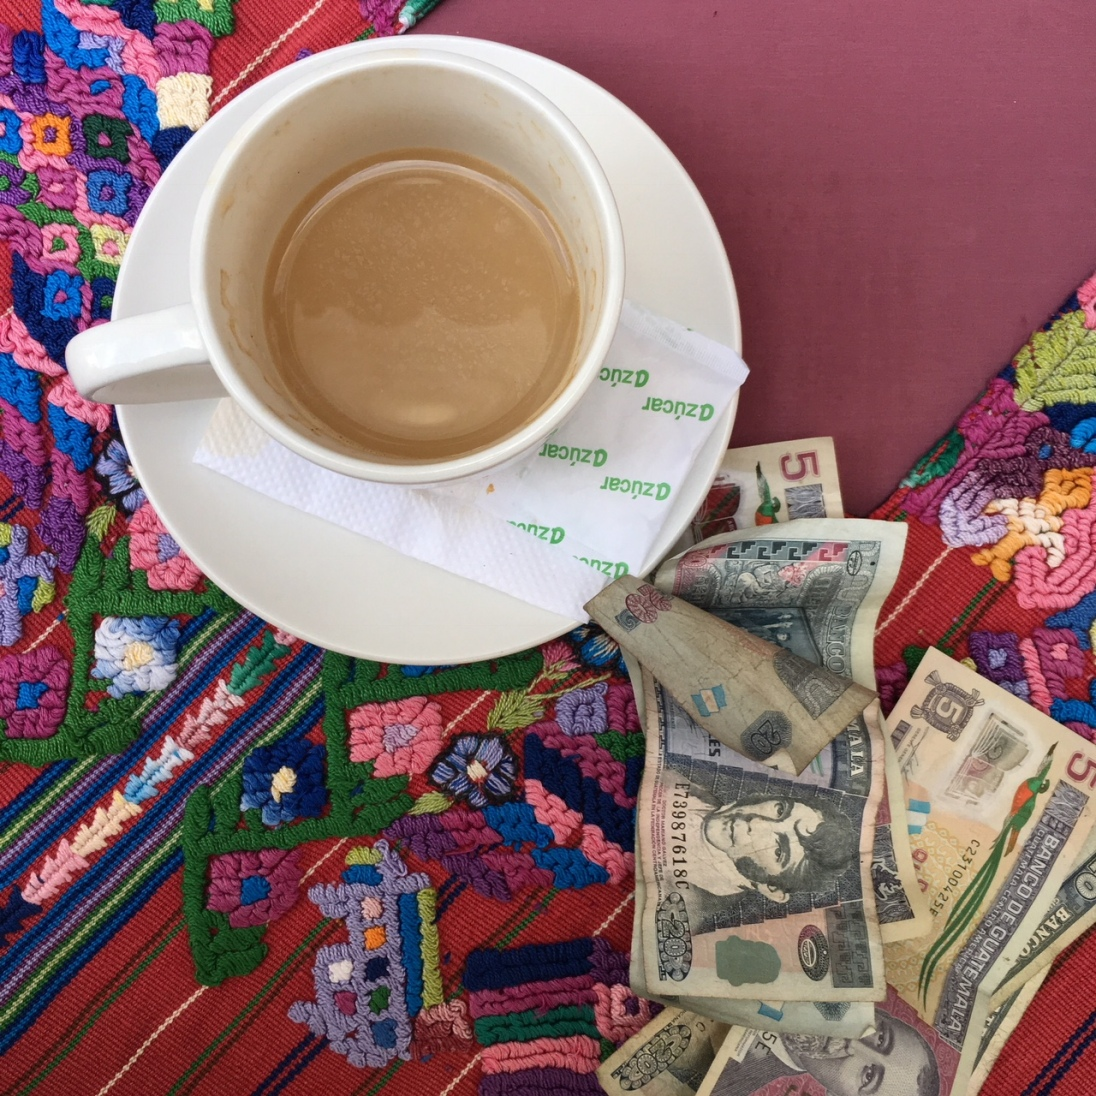 A well deserved cafe con leche after a textile romp in the largest market in Central America! Chichicanstenango!